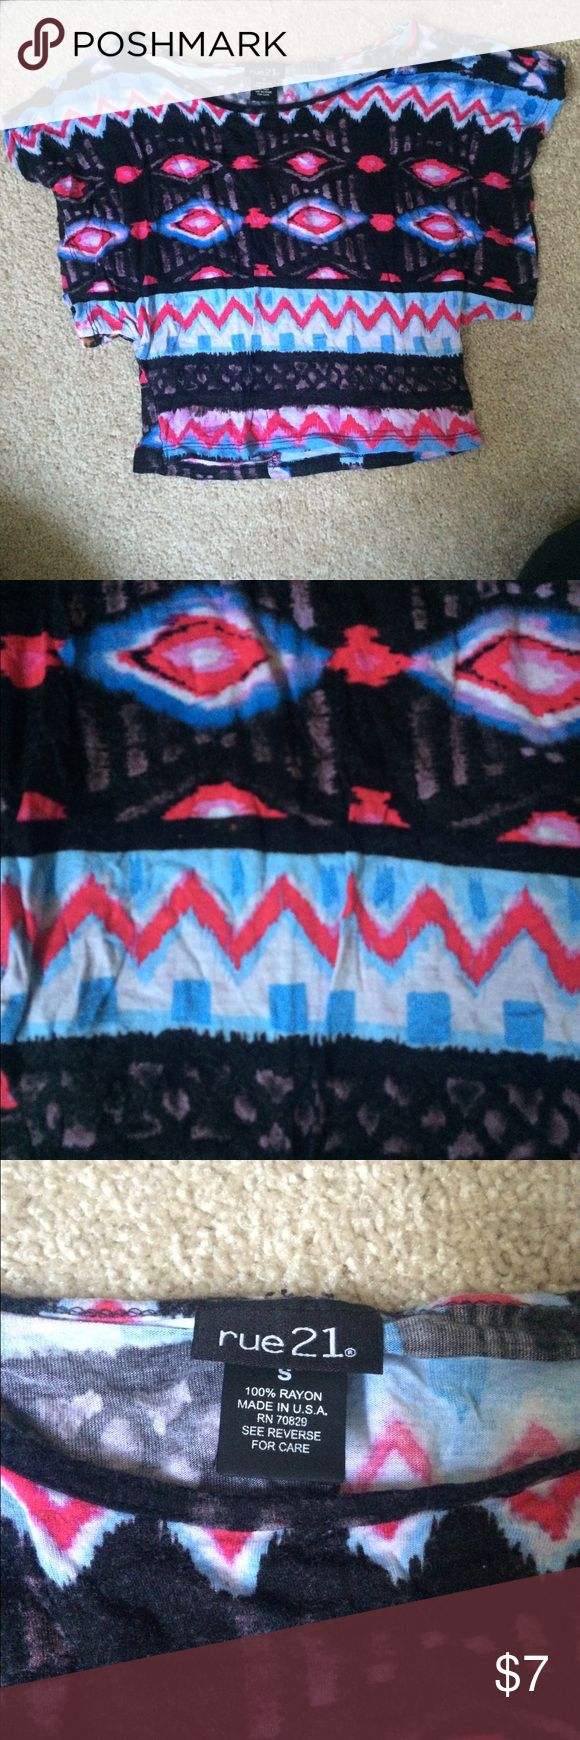 Aztec crop top Aztec crop top. In good condition. Feel free to ask for additional pictures. Rue 21 Tops Crop Tops